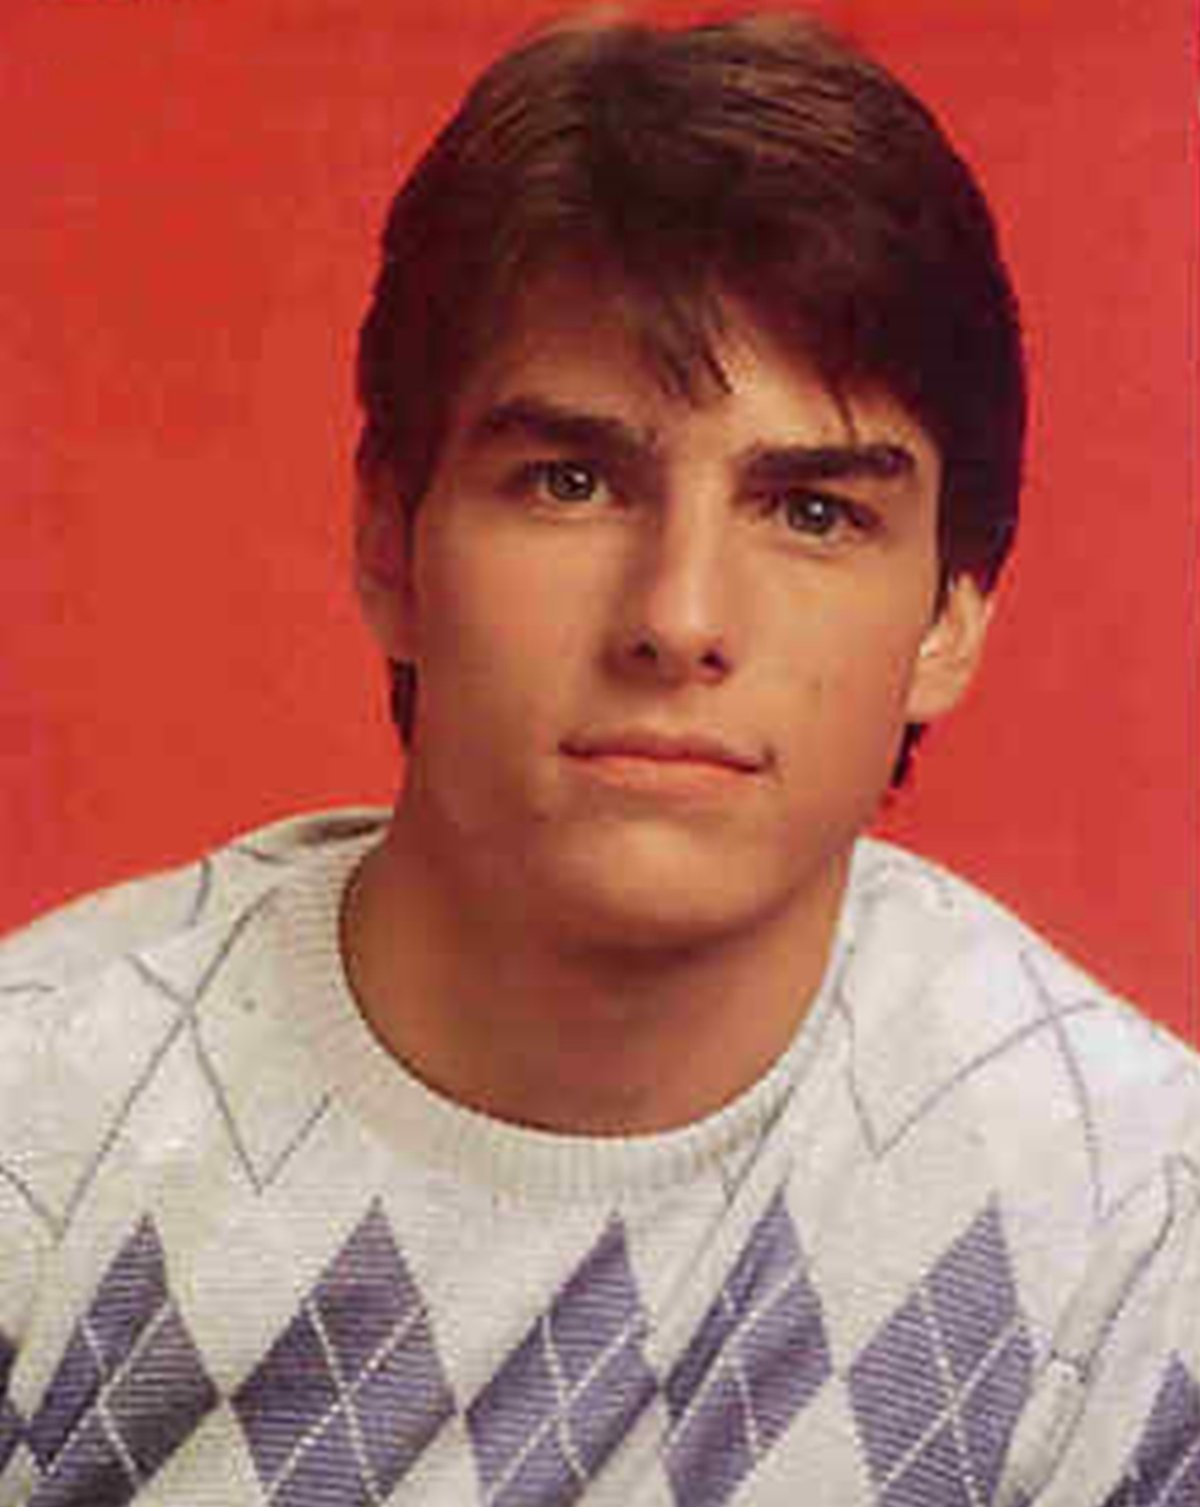 4 4 14 Interesting Facts About Tom Cruise